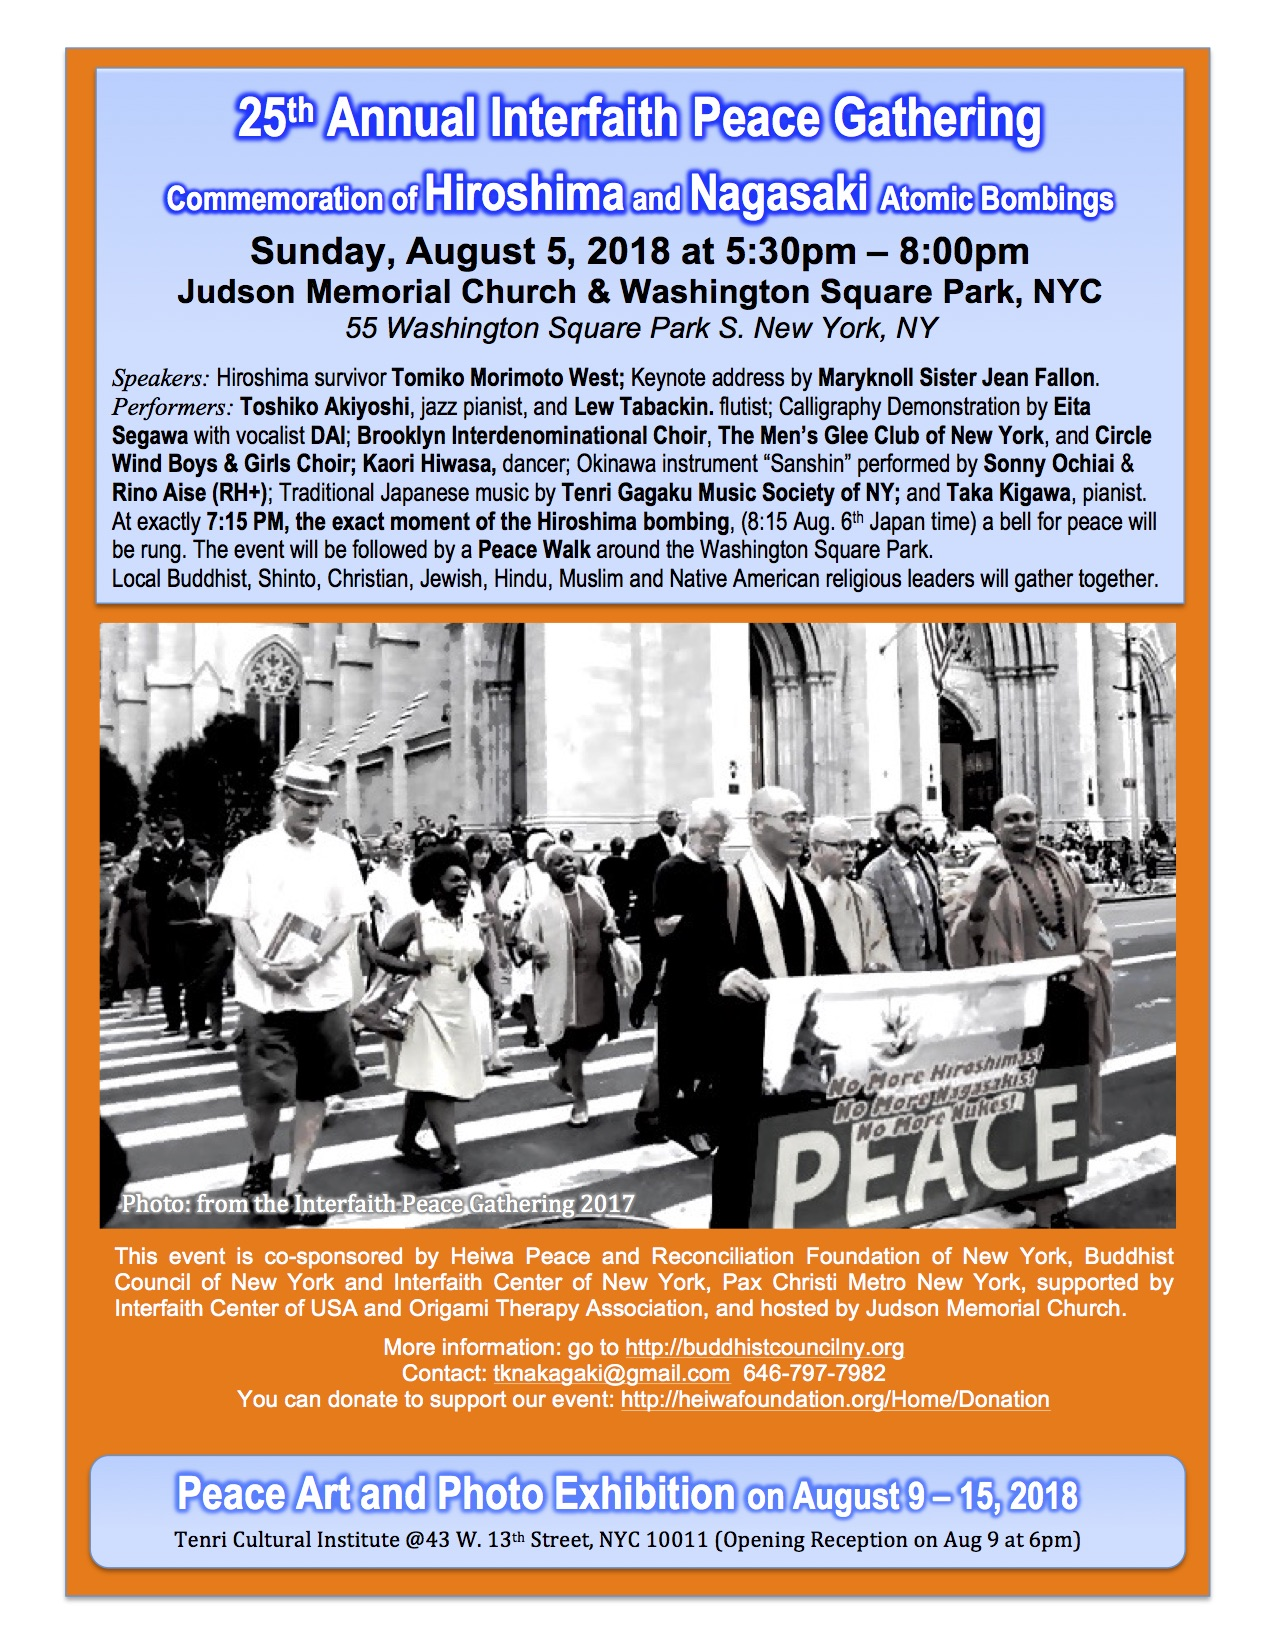 25th Annual Interfaith Peace Gathering